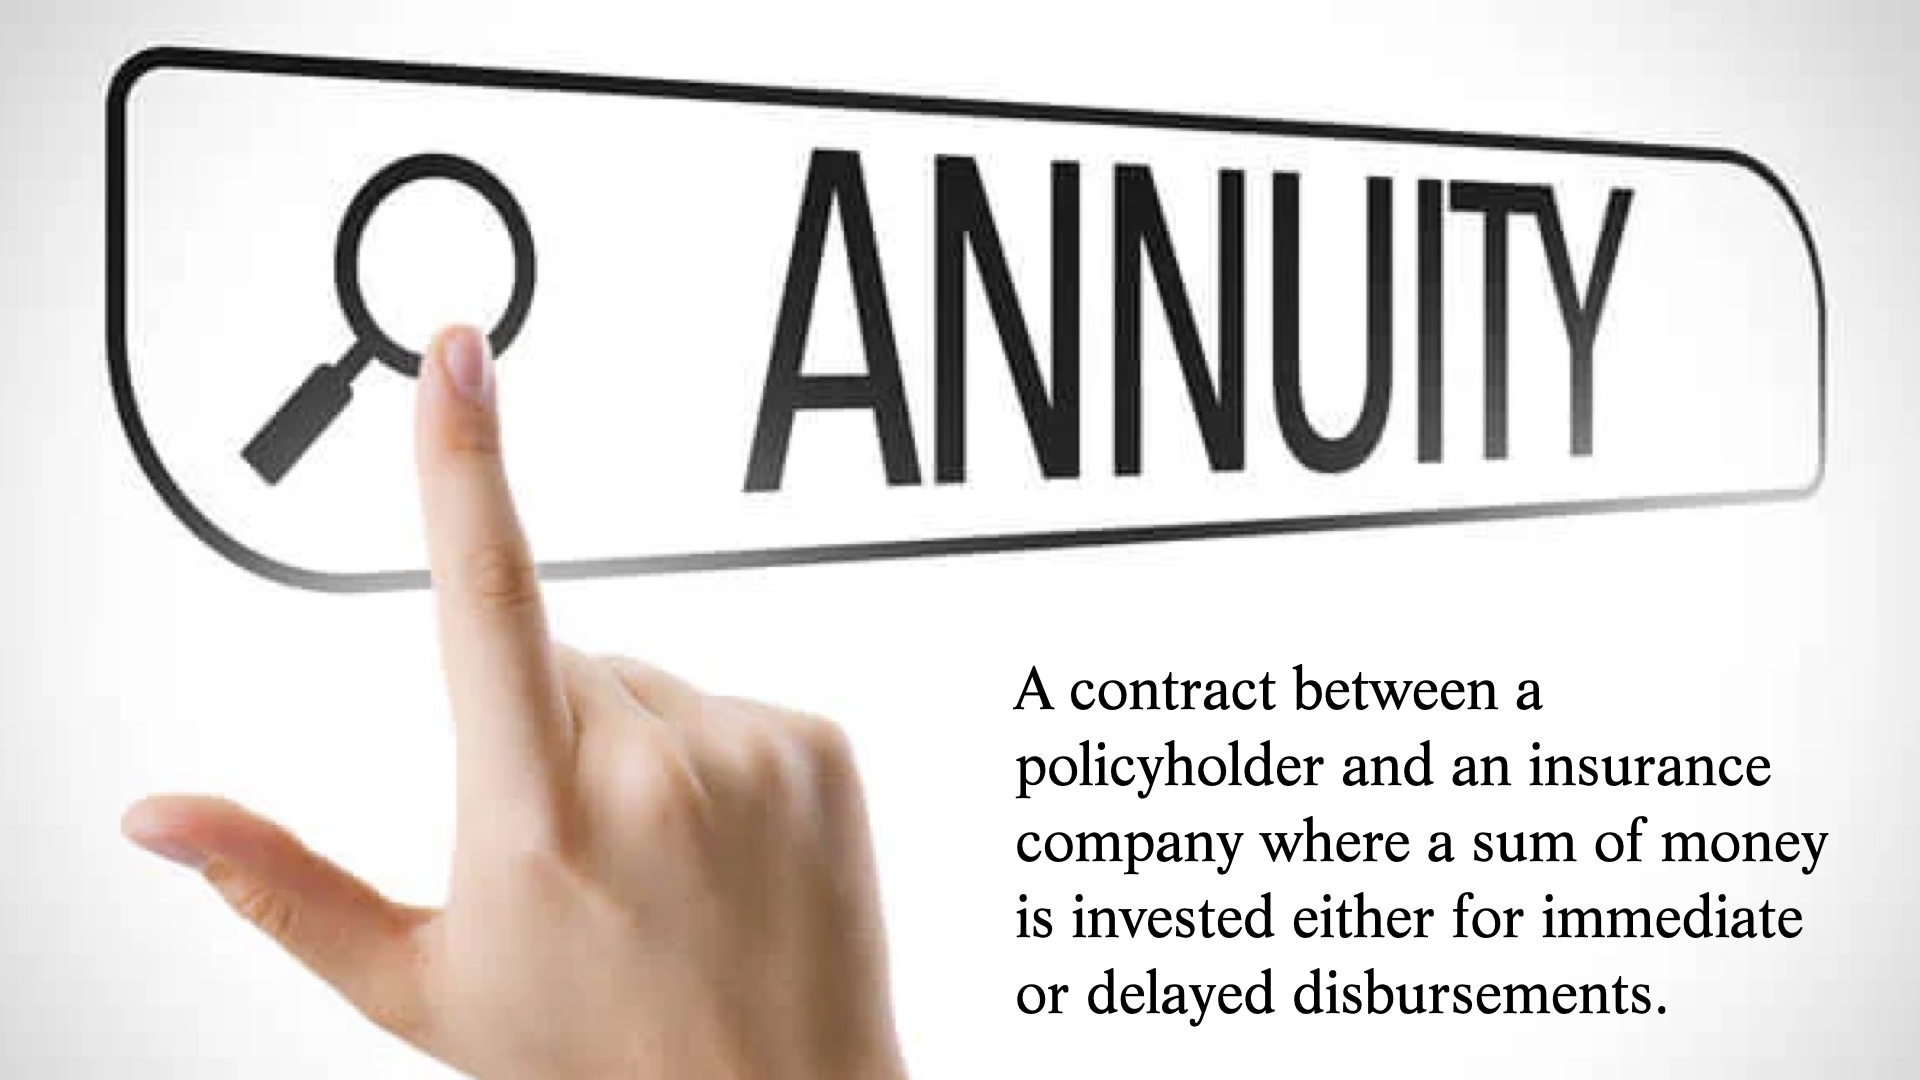 An annuity is a contract between a policy holder and an insurance company. The policy holder invests a sum of money in return for future earnings and/or withdrawals.